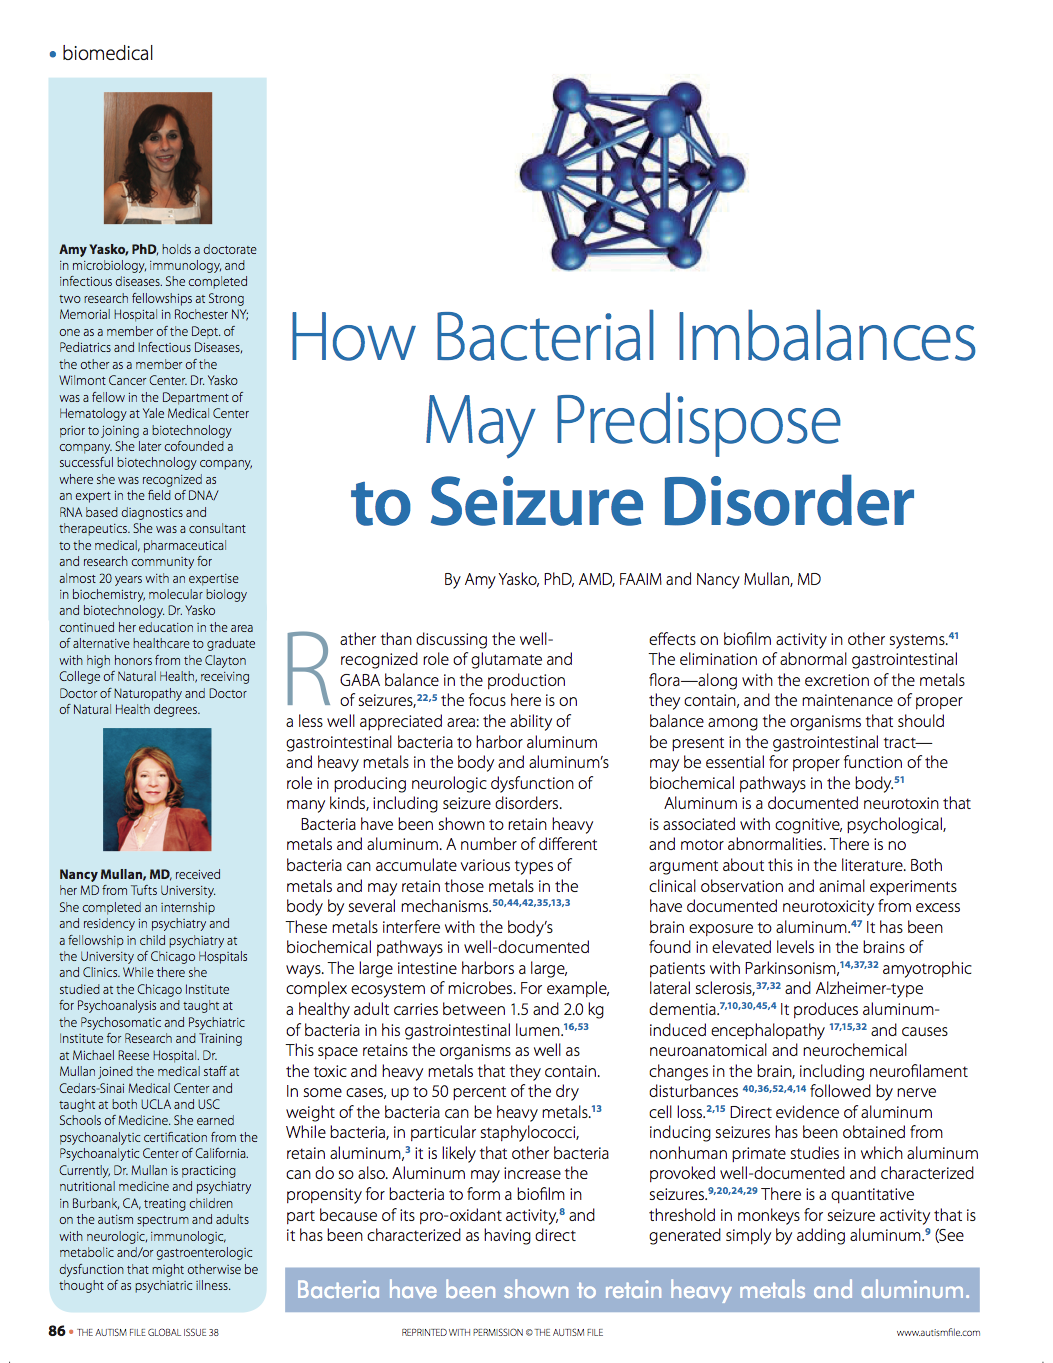 How Bacterial Imbalances May Predispose to Seizure Disorder